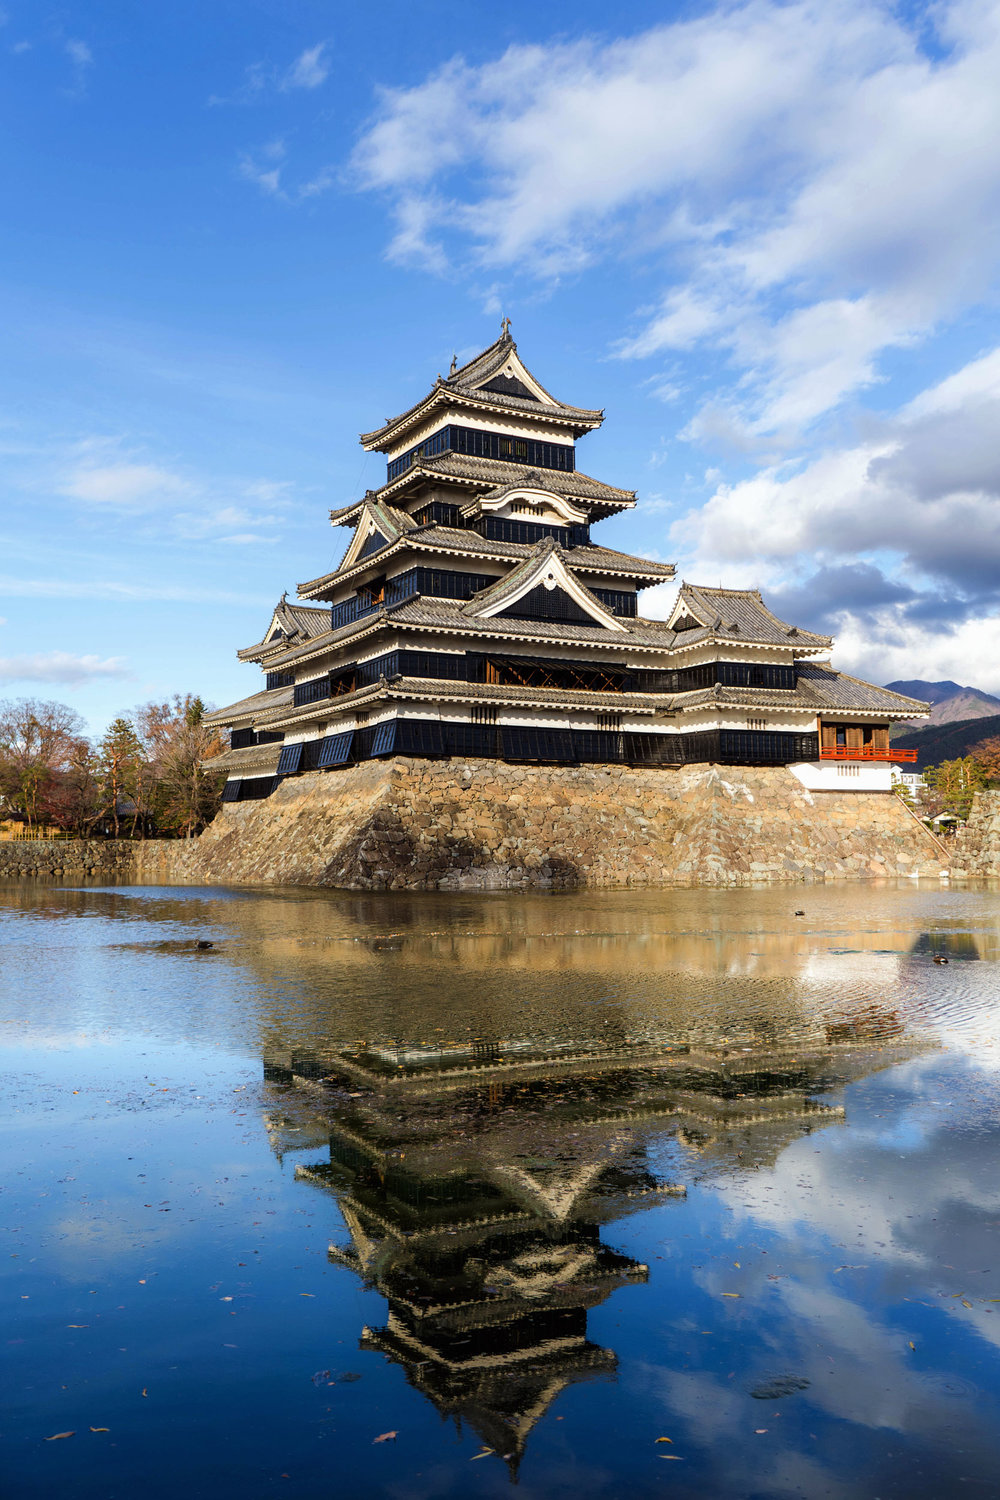 Matsumoto castle reflecting in the moat